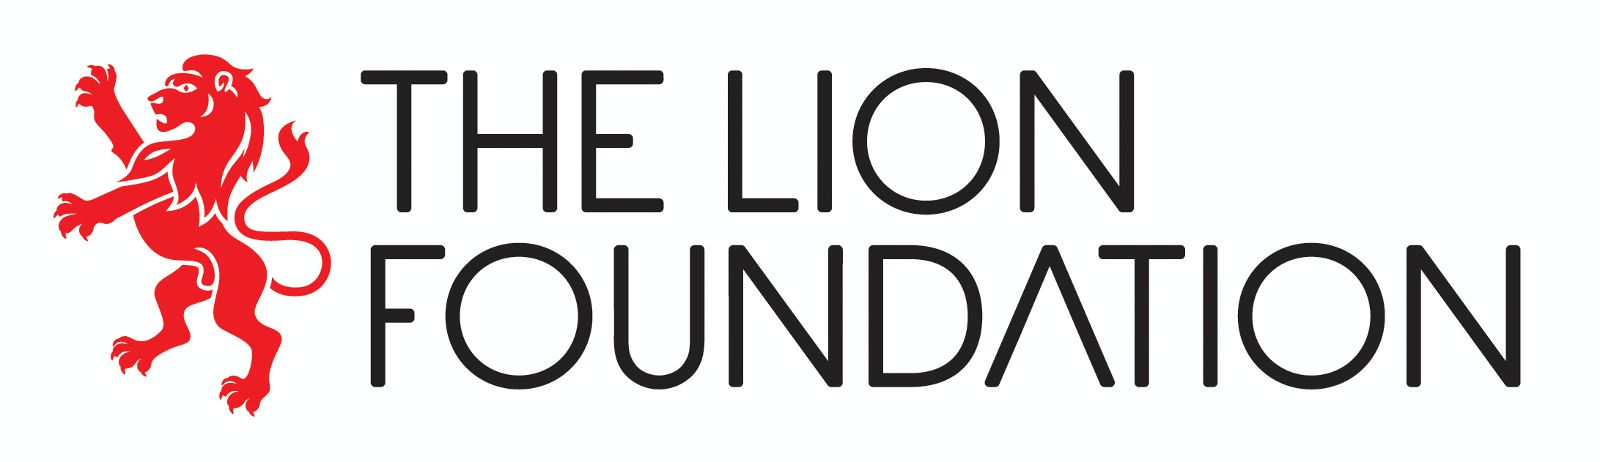 the-lion-foundation